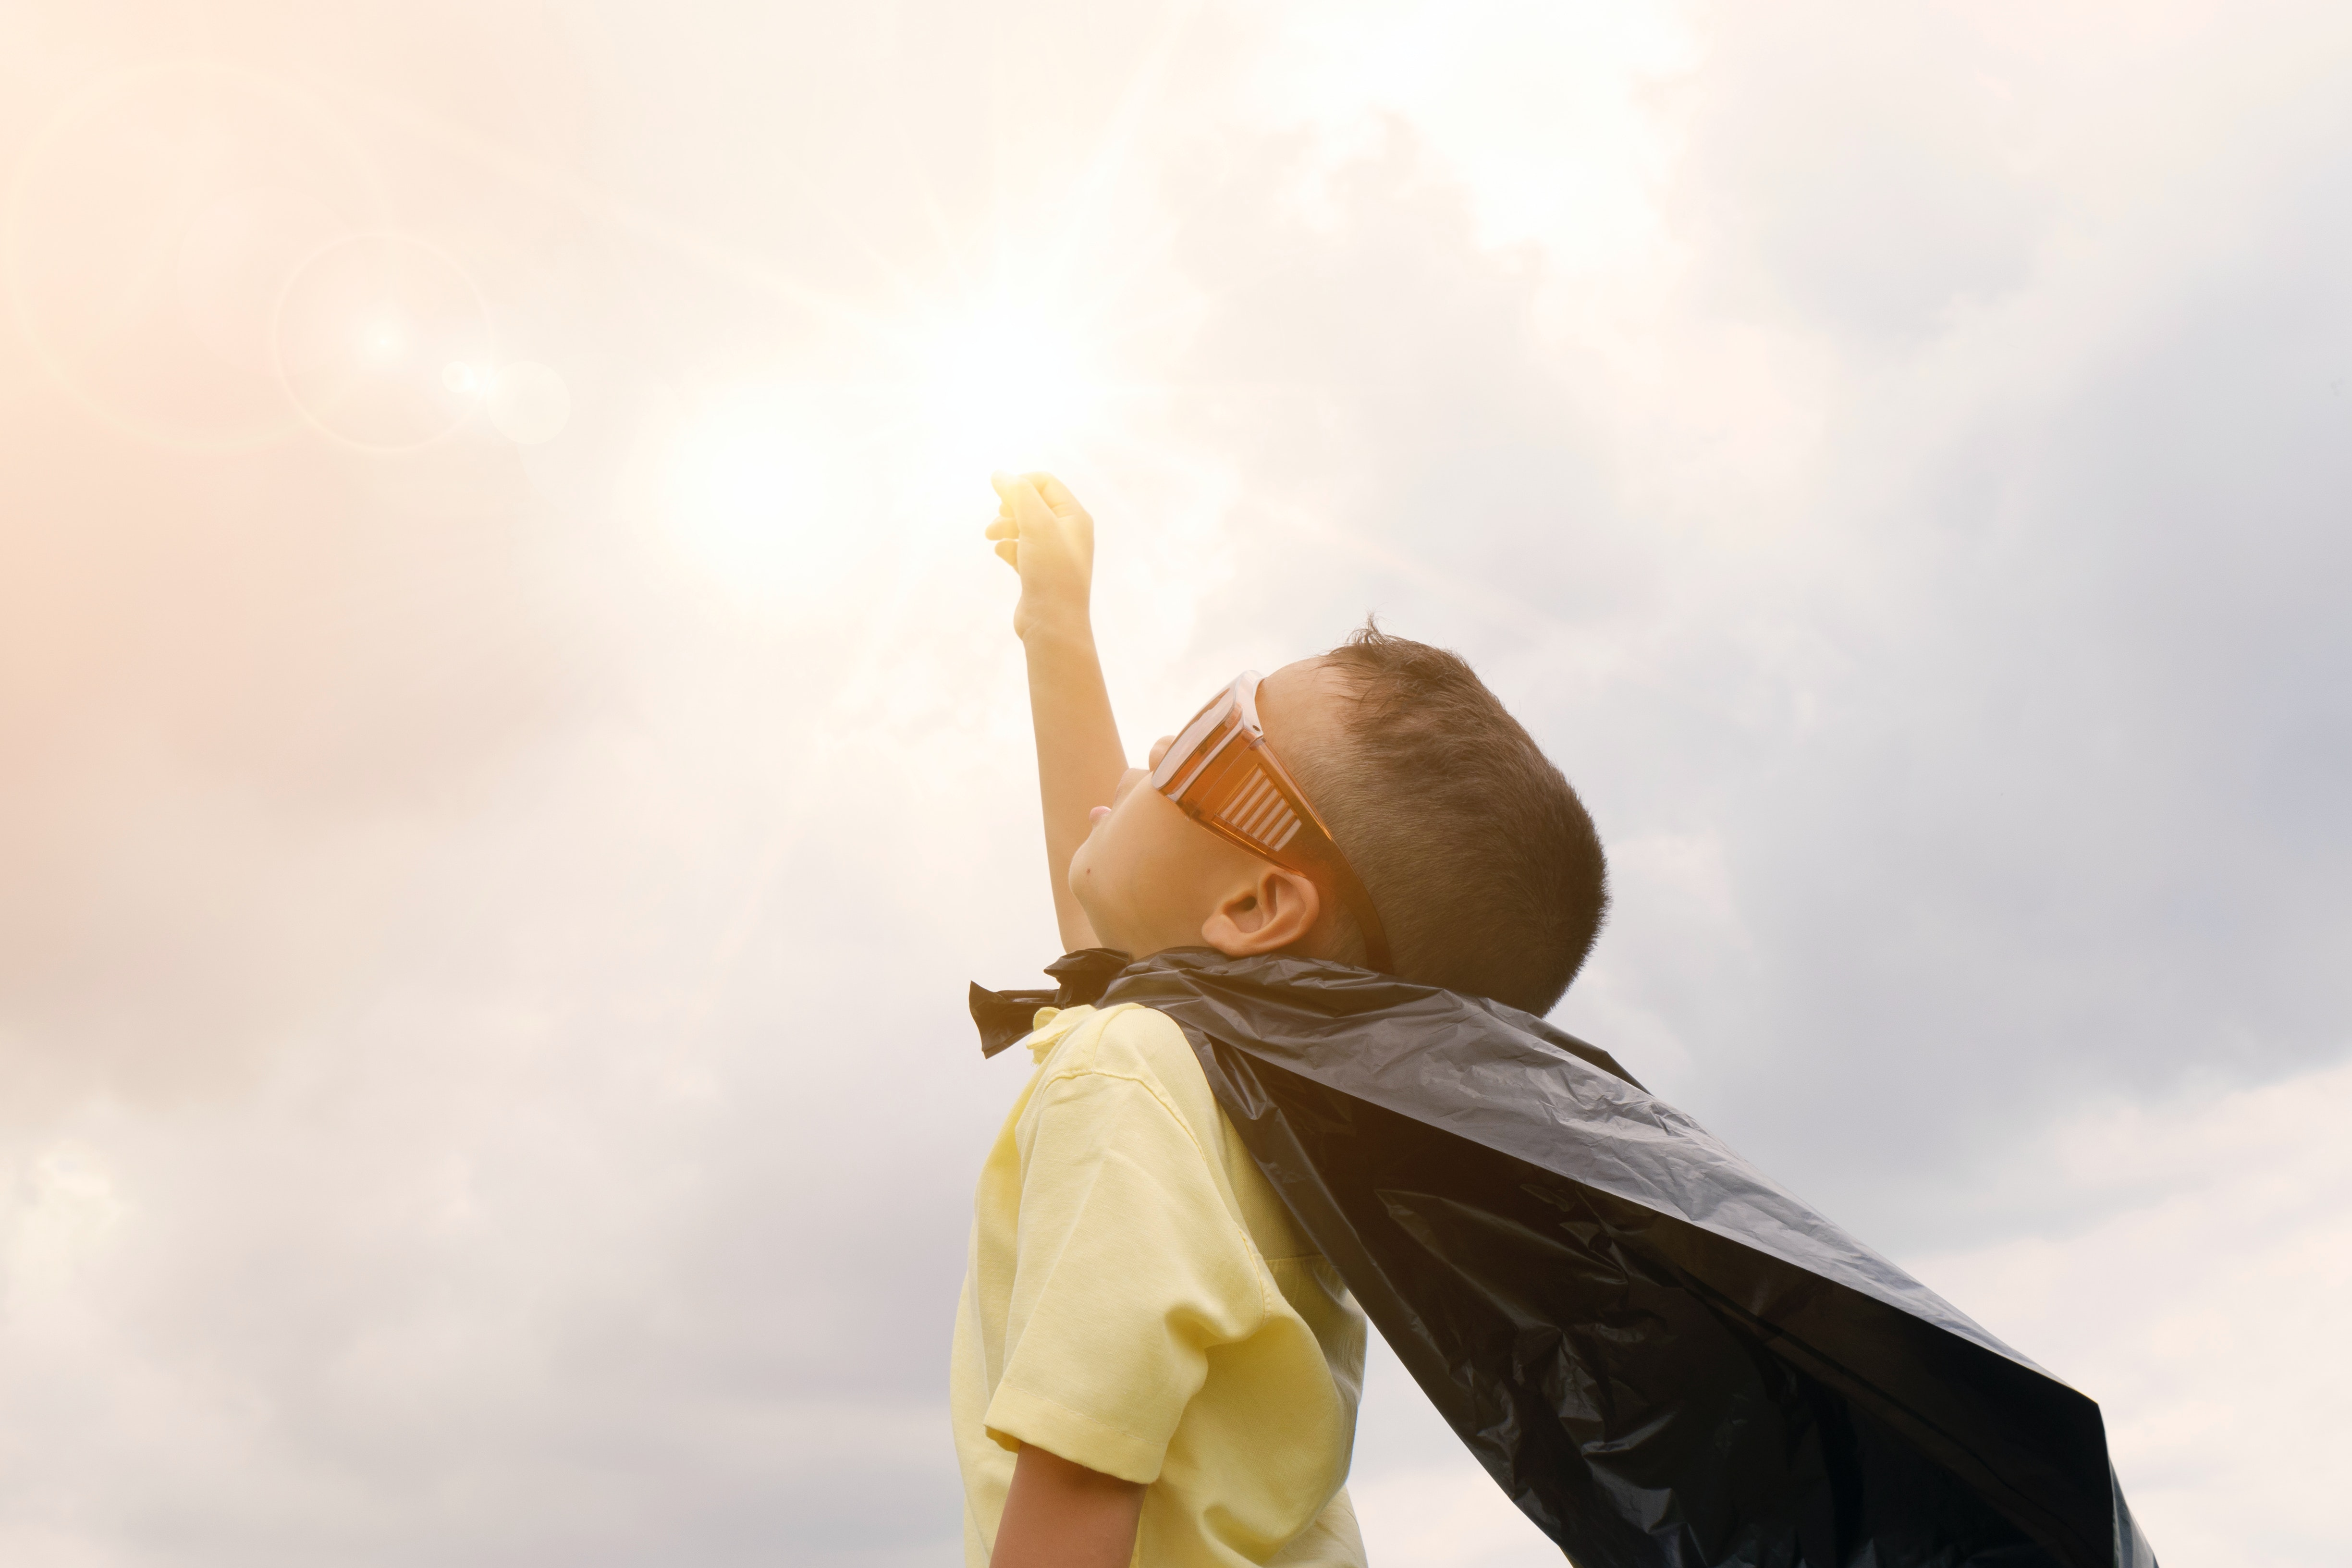 Toddler pointing to the sky, wearing a cape and sunglasses pretending to be a superhero